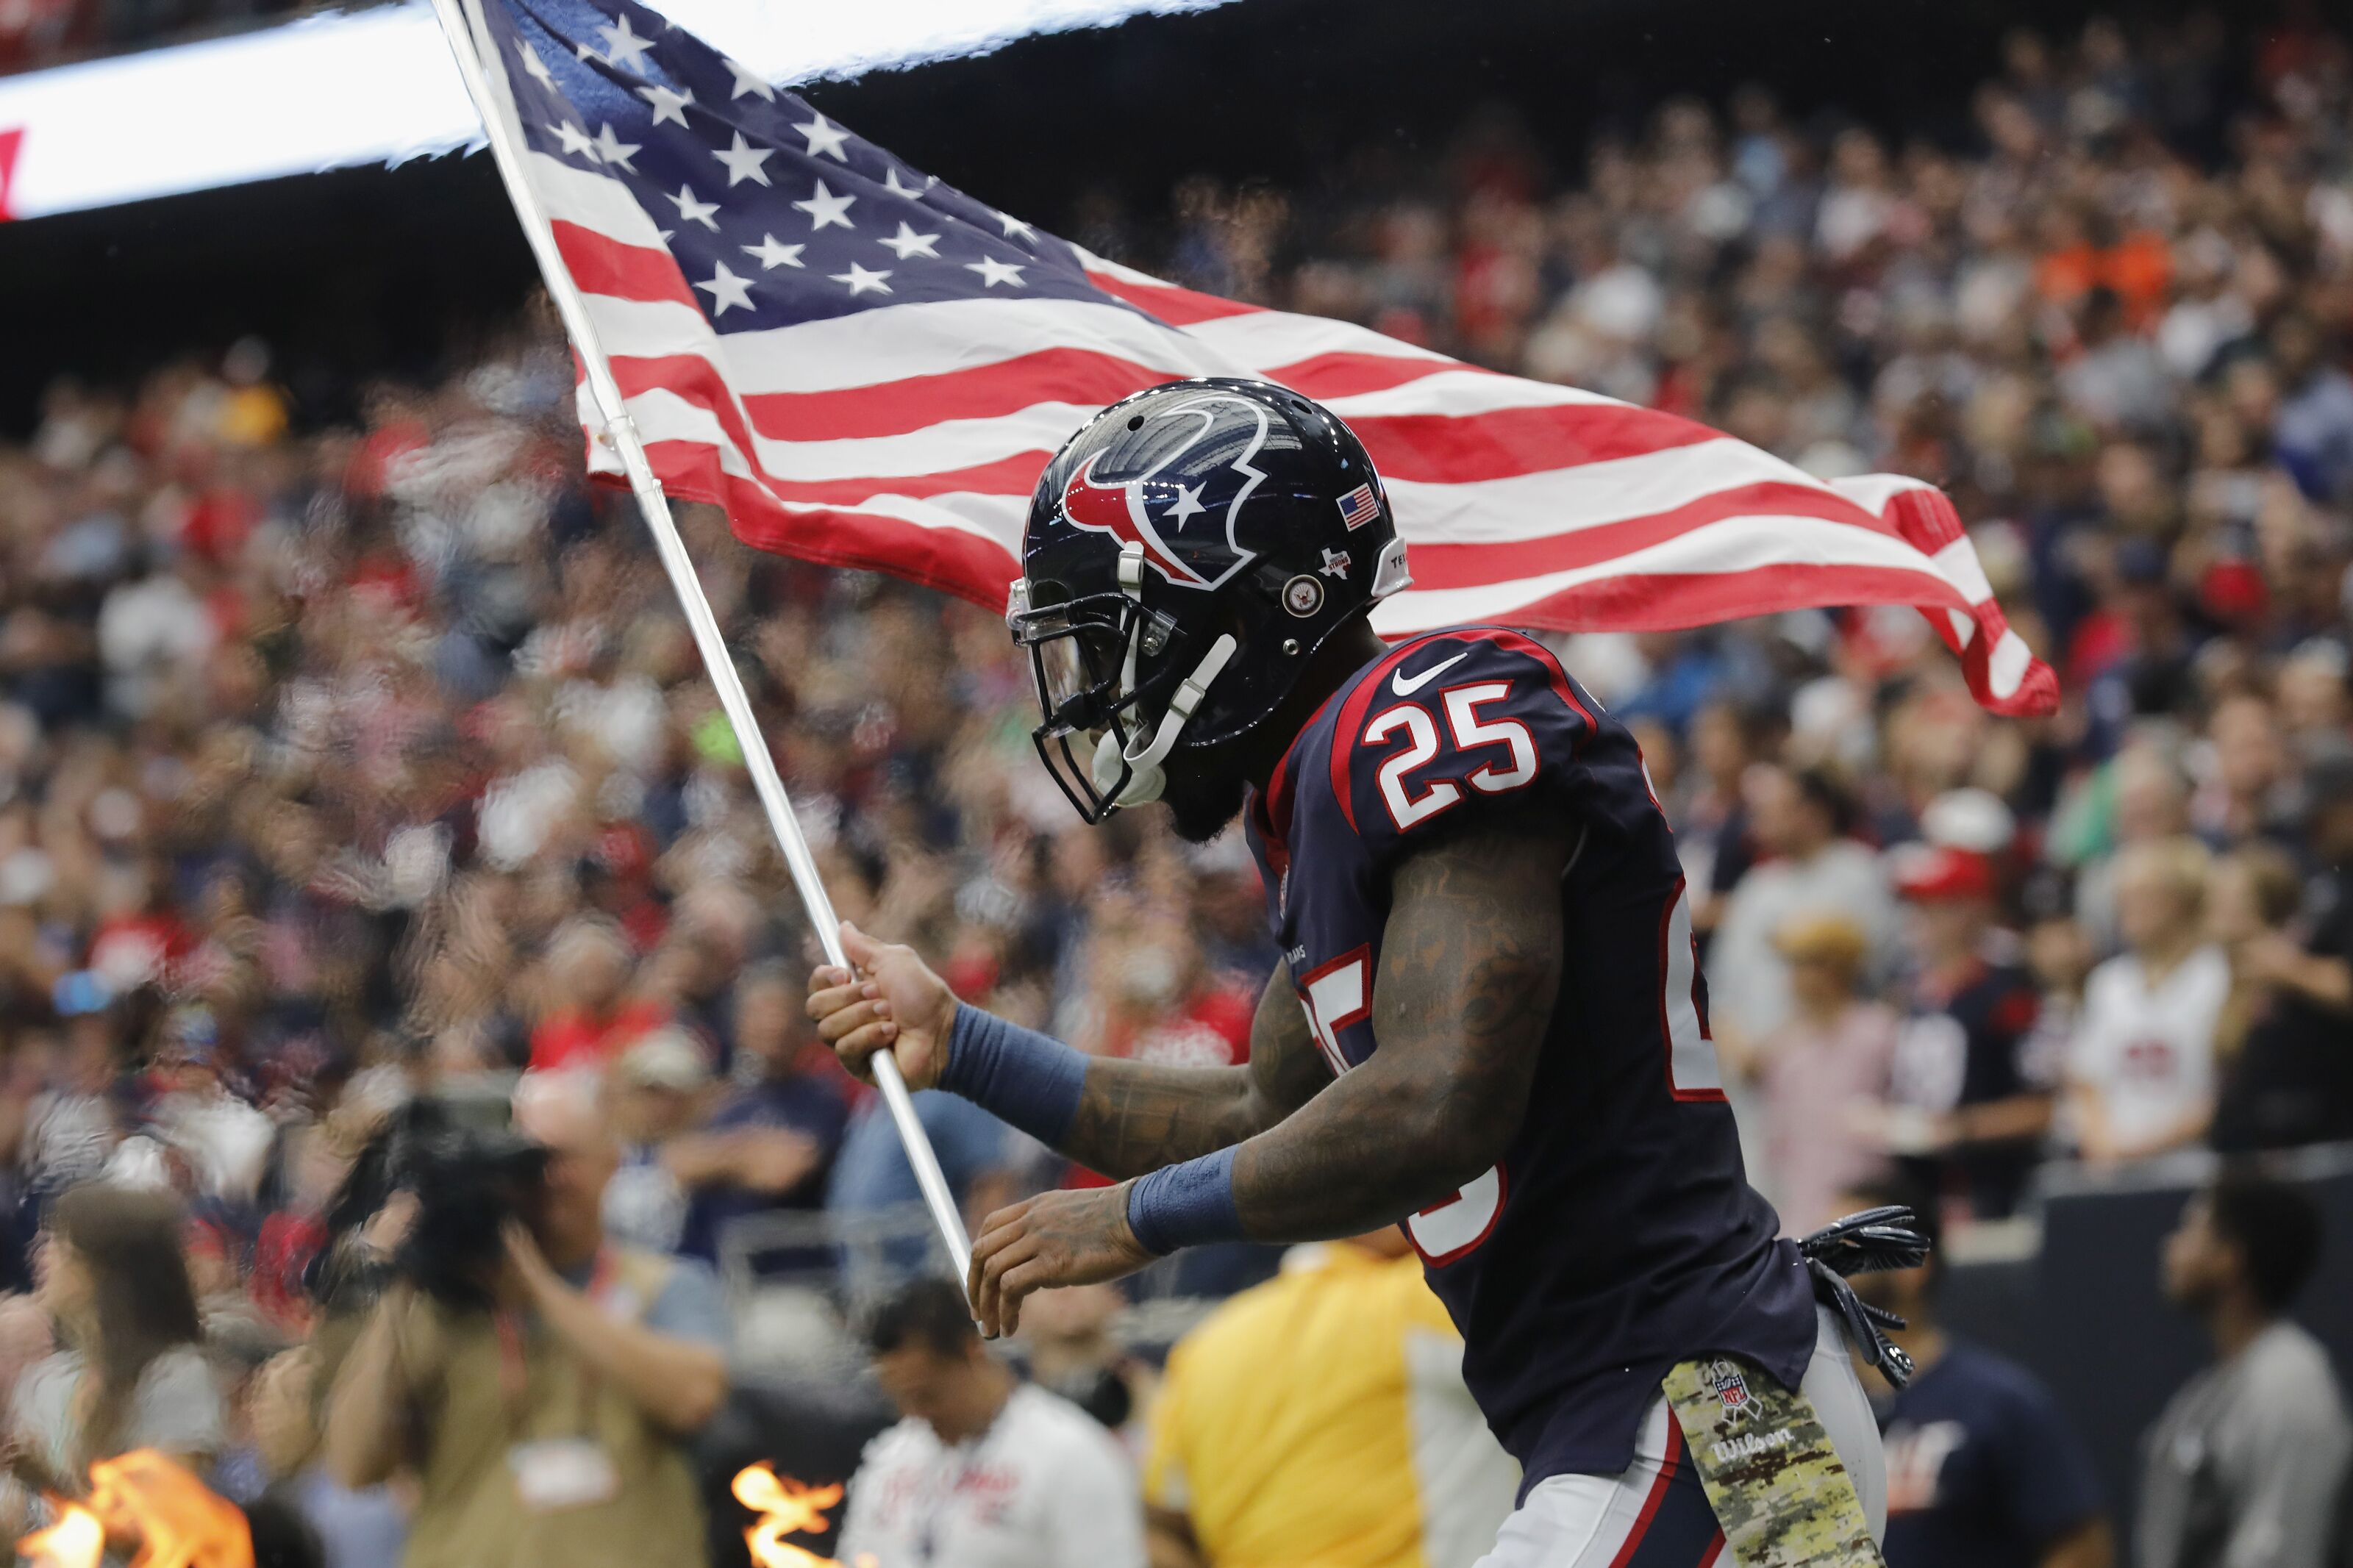 HOUSTON, TX - NOVEMBER 05: Kareem Jackson #25 of the Houston Texans takes the field before the game against the Indianapolis Colts at NRG Stadium on November 5, 2017 in Houston, Texas. (Photo by Tim Warner/Getty Images)